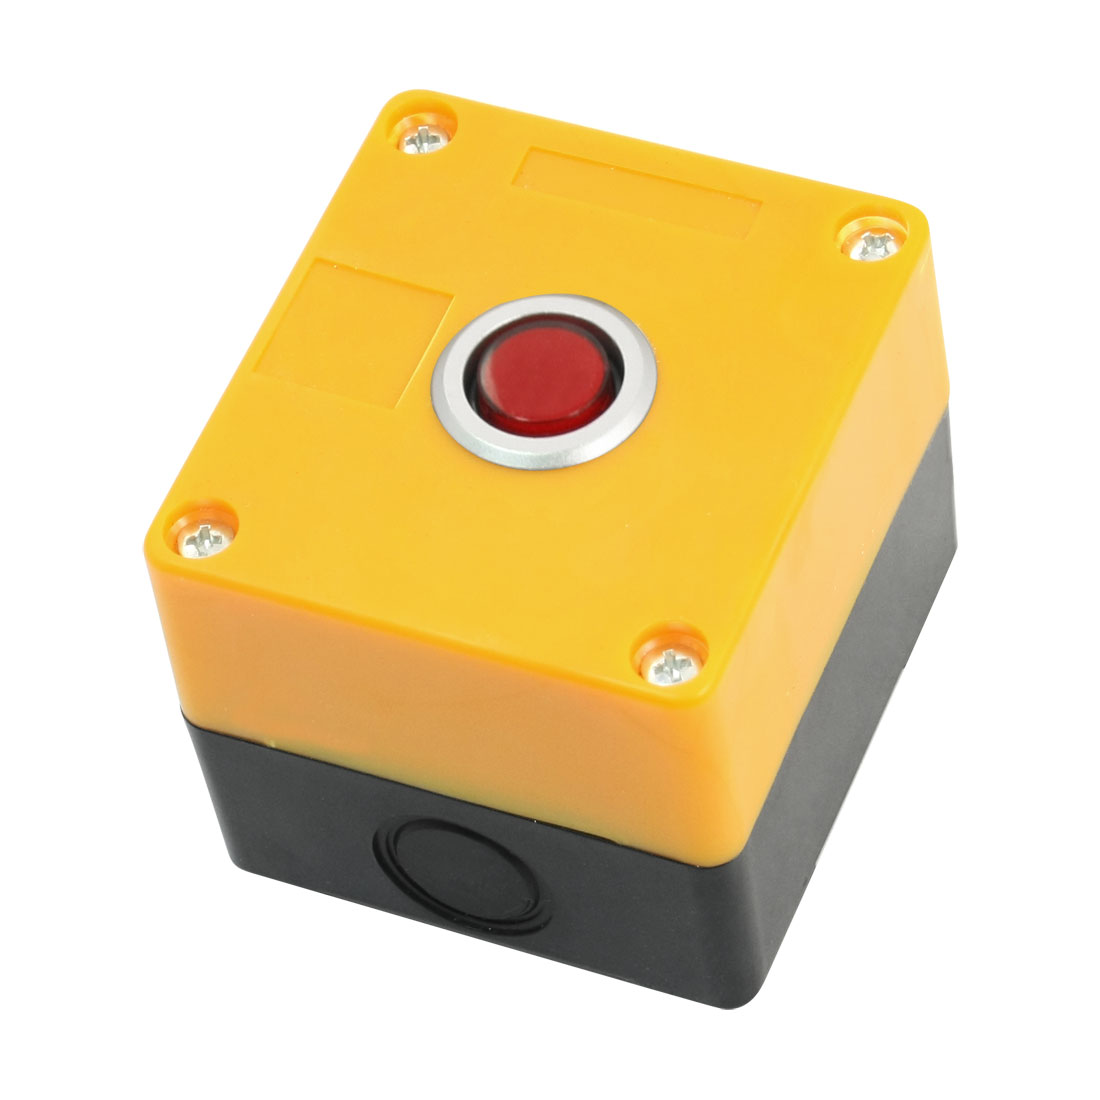 AC 220V 5A Red Light SPDT 1NO 1NC 5-Pin Momentary Control Round Button Pushbutton Station Switch Control Box Guard Protector